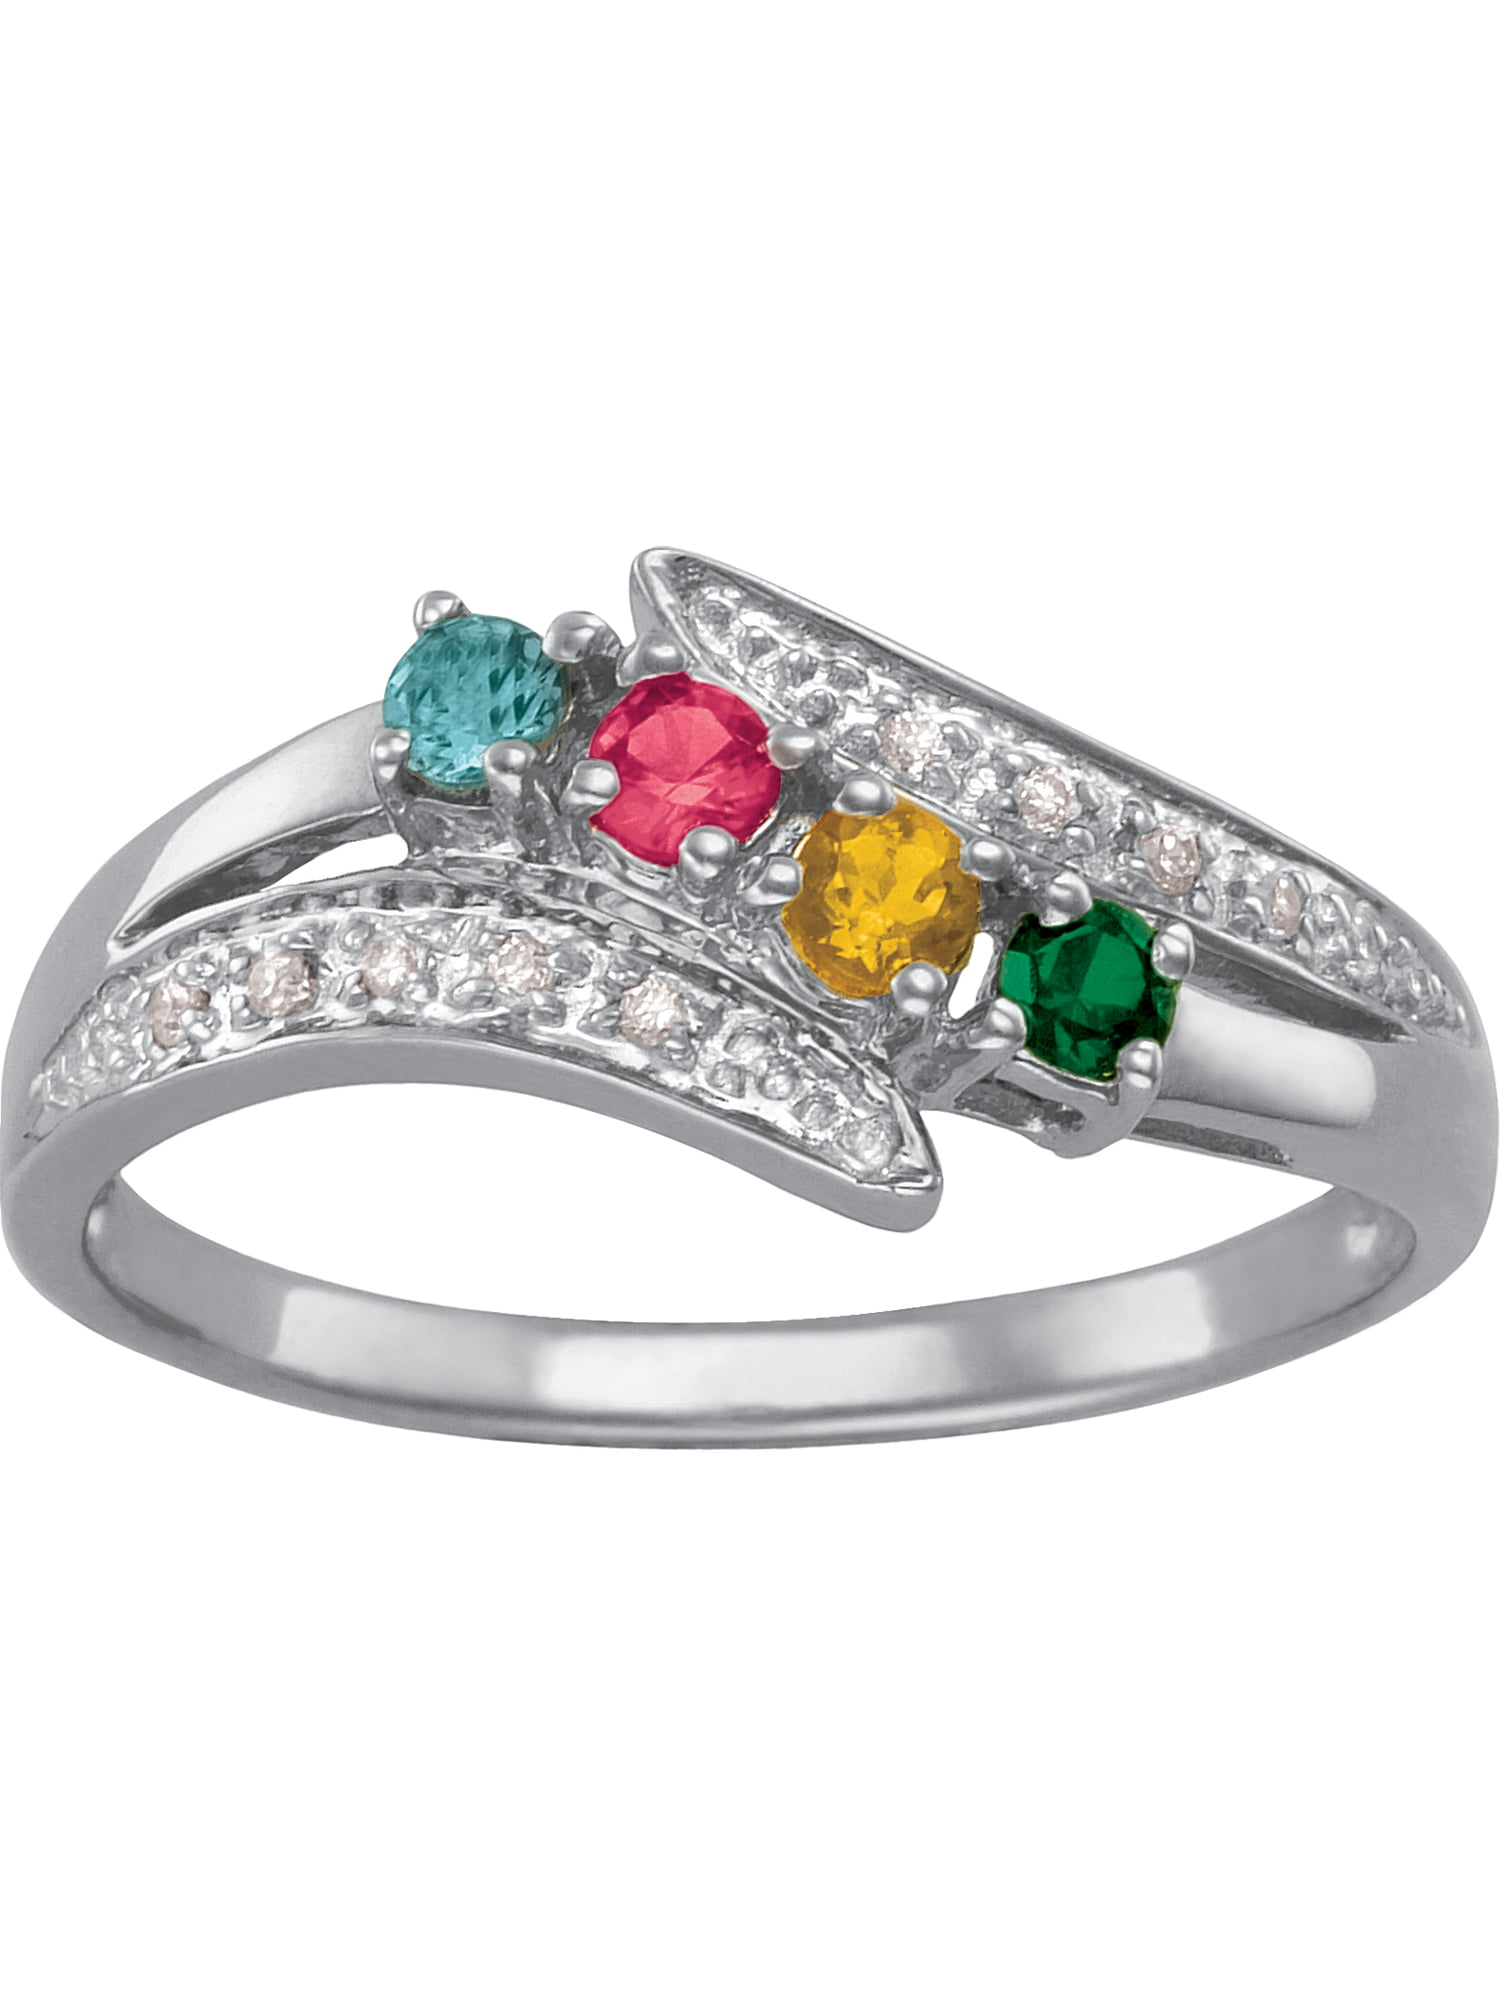 Family Mother/'s Ring Sterling Silver 1 to 5 Birthstones Moms Jewelry